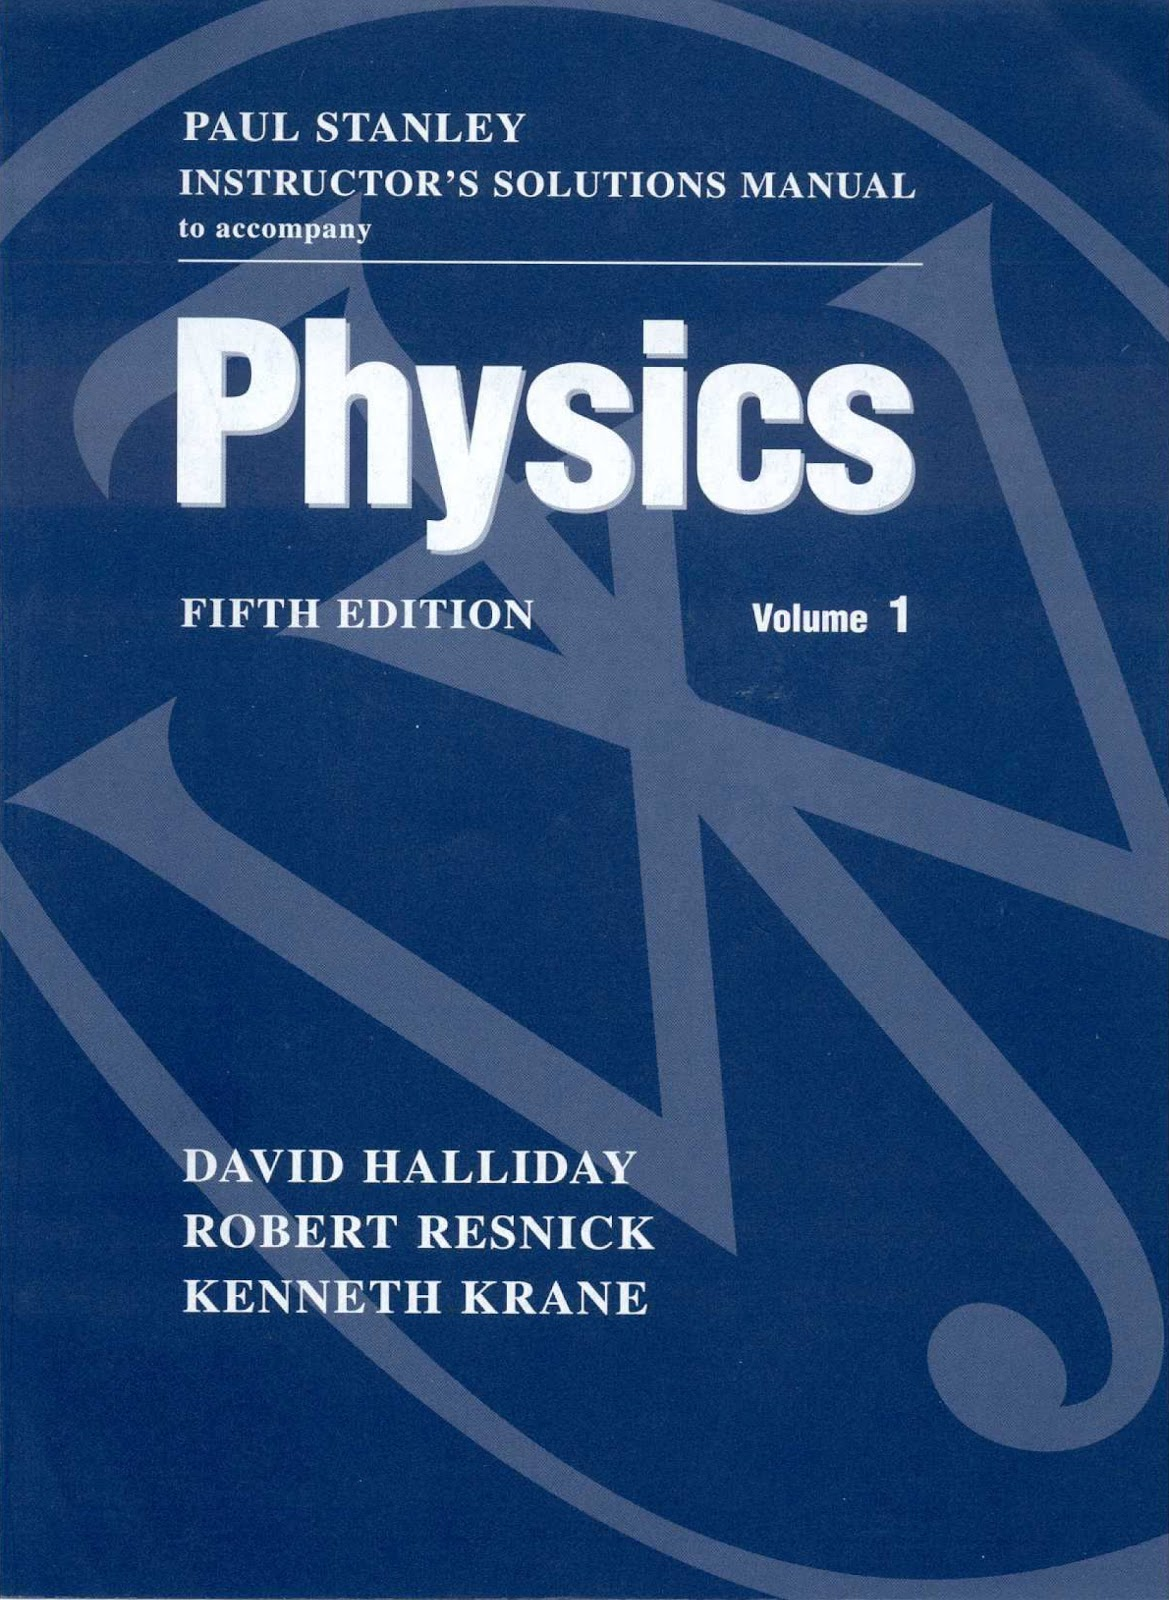 Instructor's Solutions Manual for Physics by Halliday, Resnick, and Krane  Vol. 1